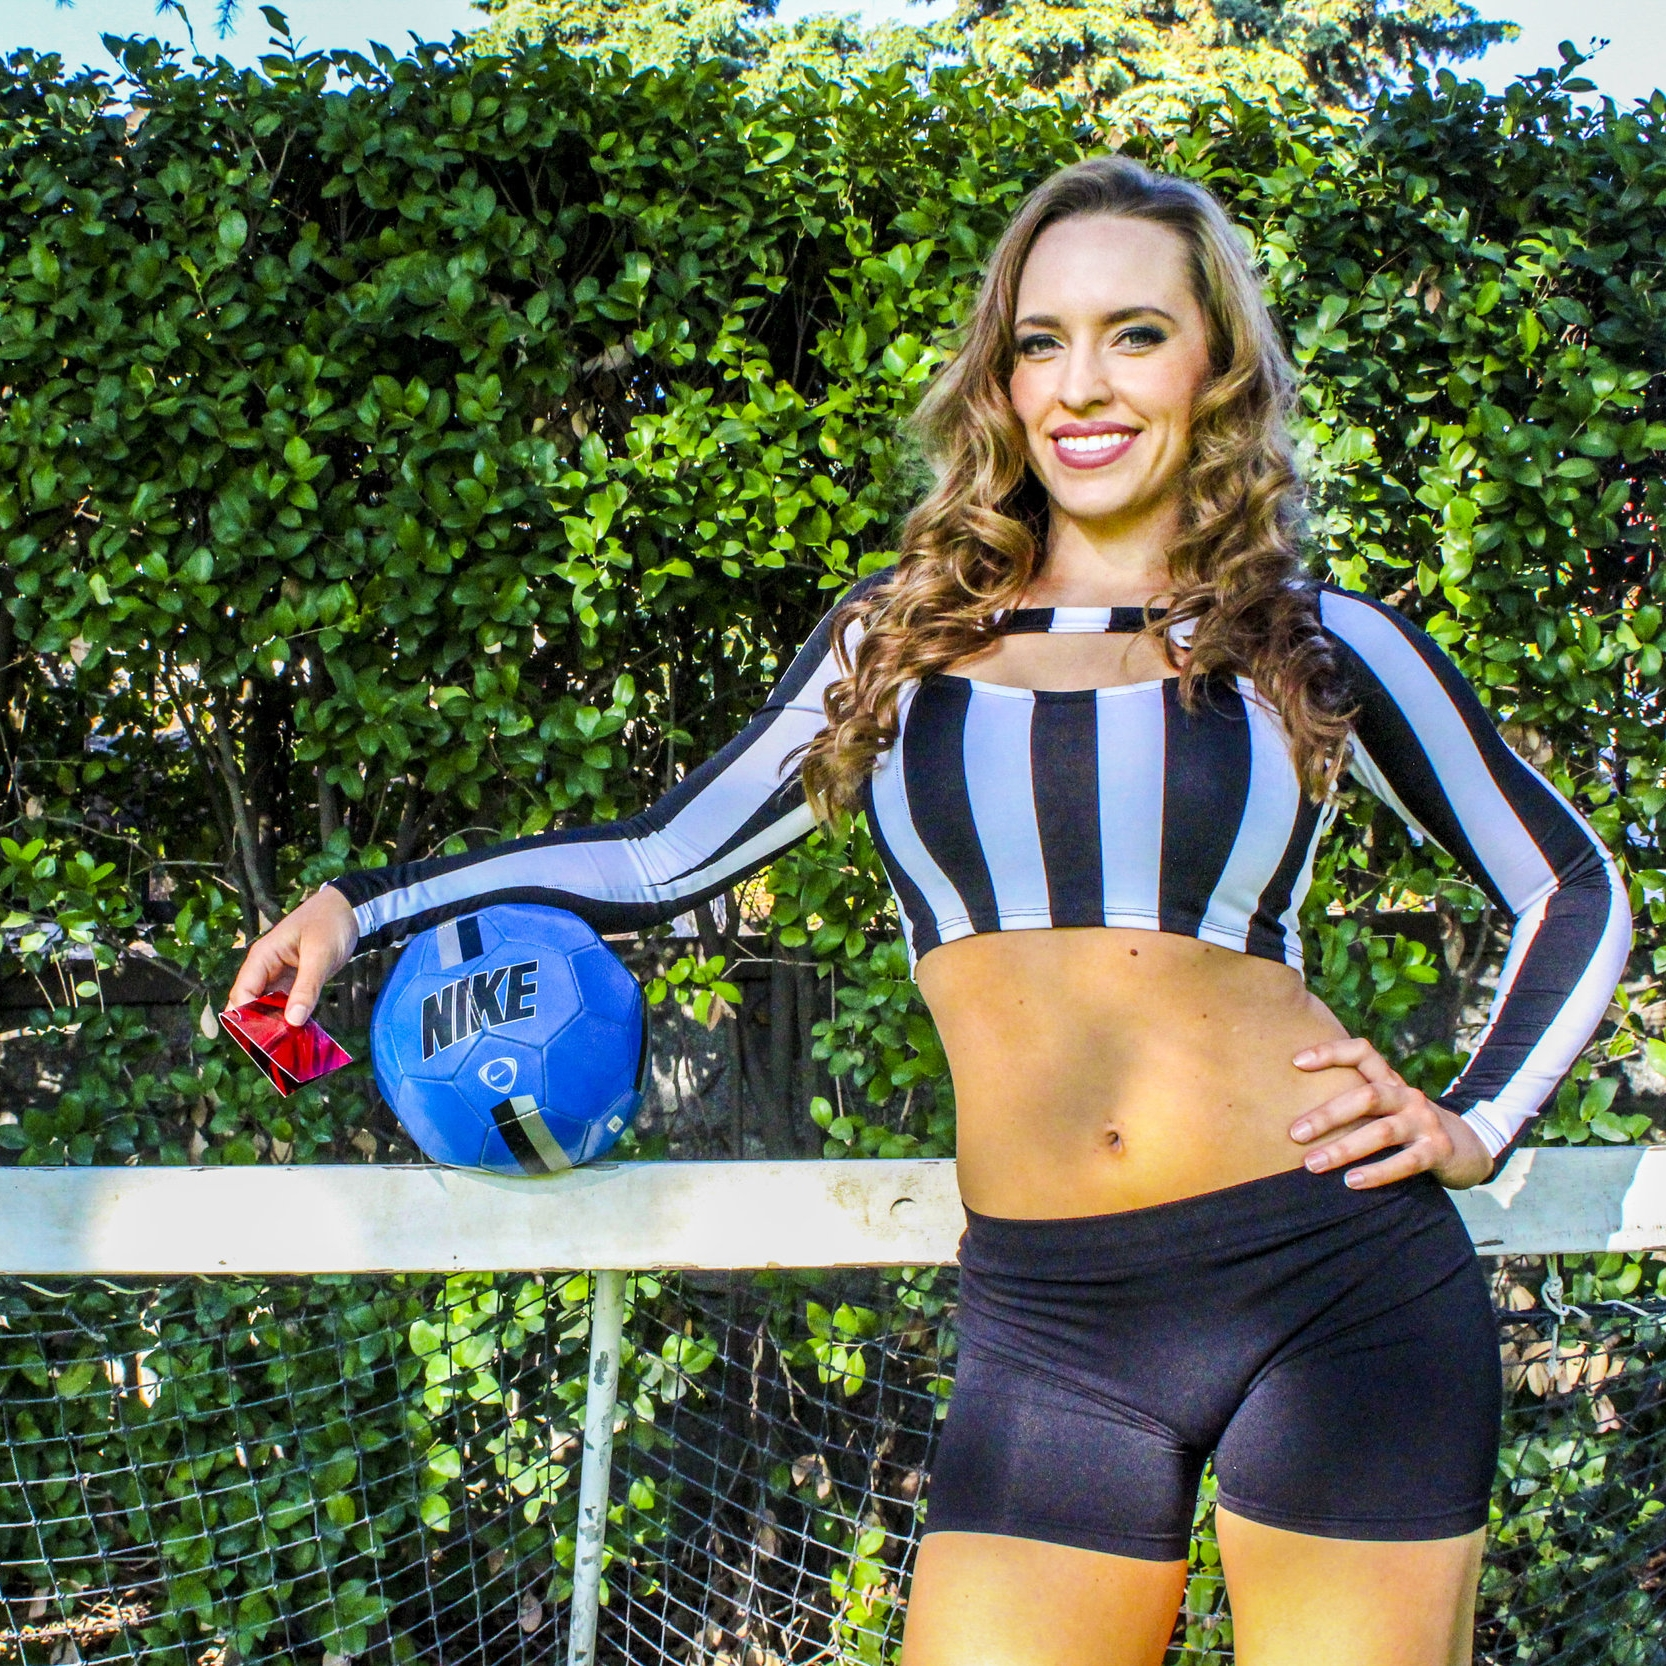 GALA GAMEDAY GIRLS - Get the chips and wings ready because its GAME TIME! From Super Bowl to World Cup parties, Gala's Game Day Girls are dressed to theme ready to host your event & bar.